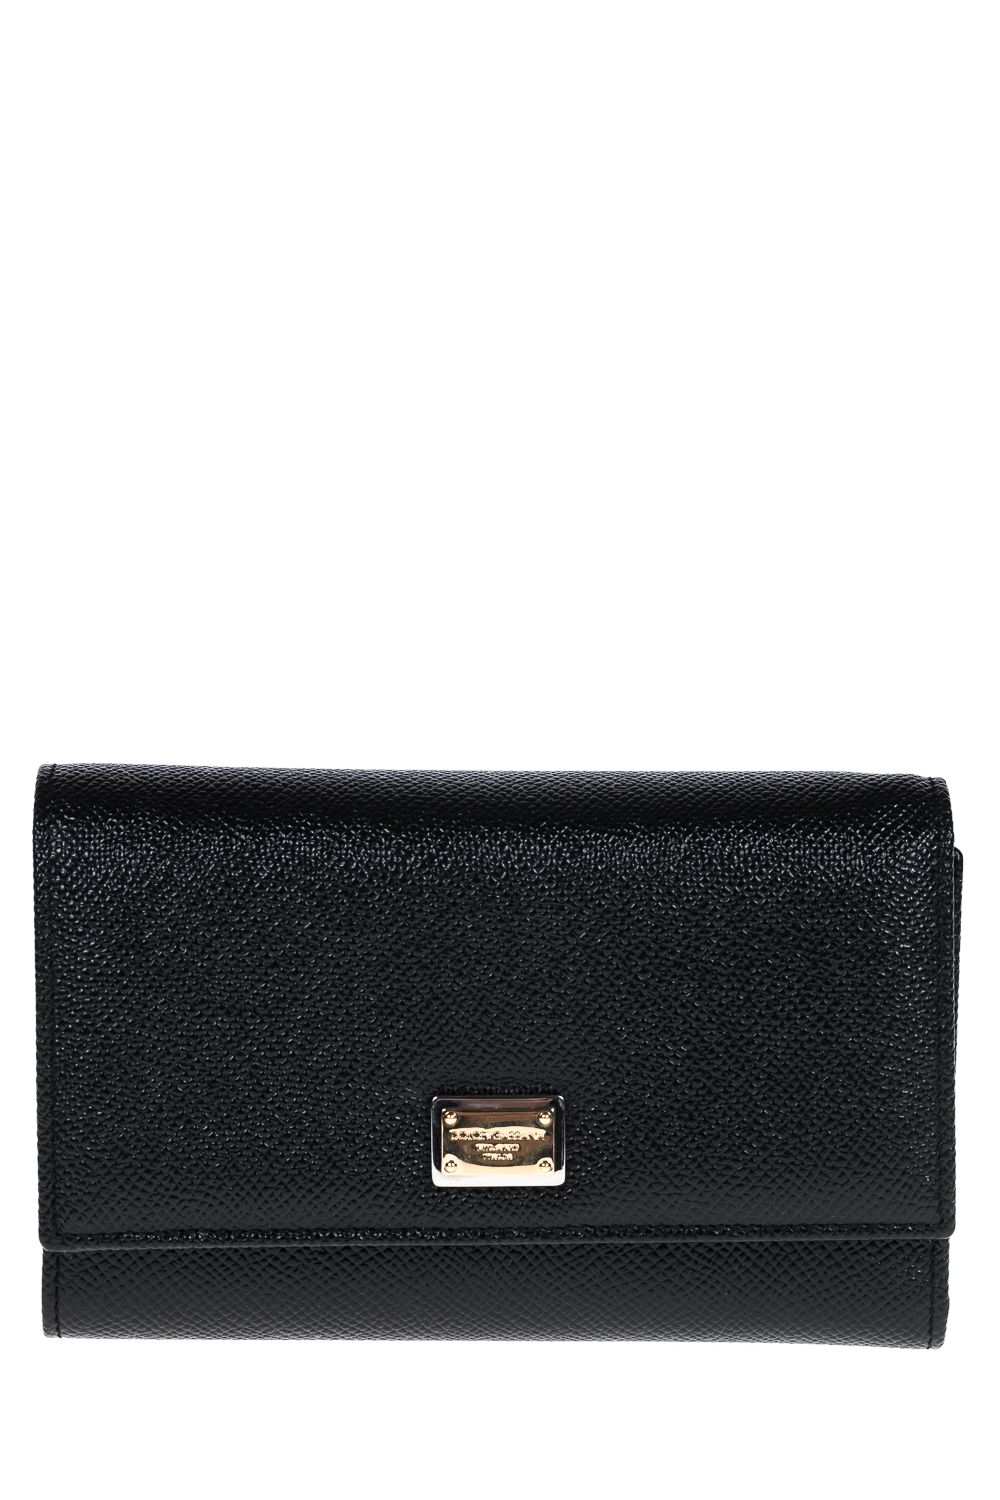 Dolce & Gabbana Medium Leather Wallet With Flap